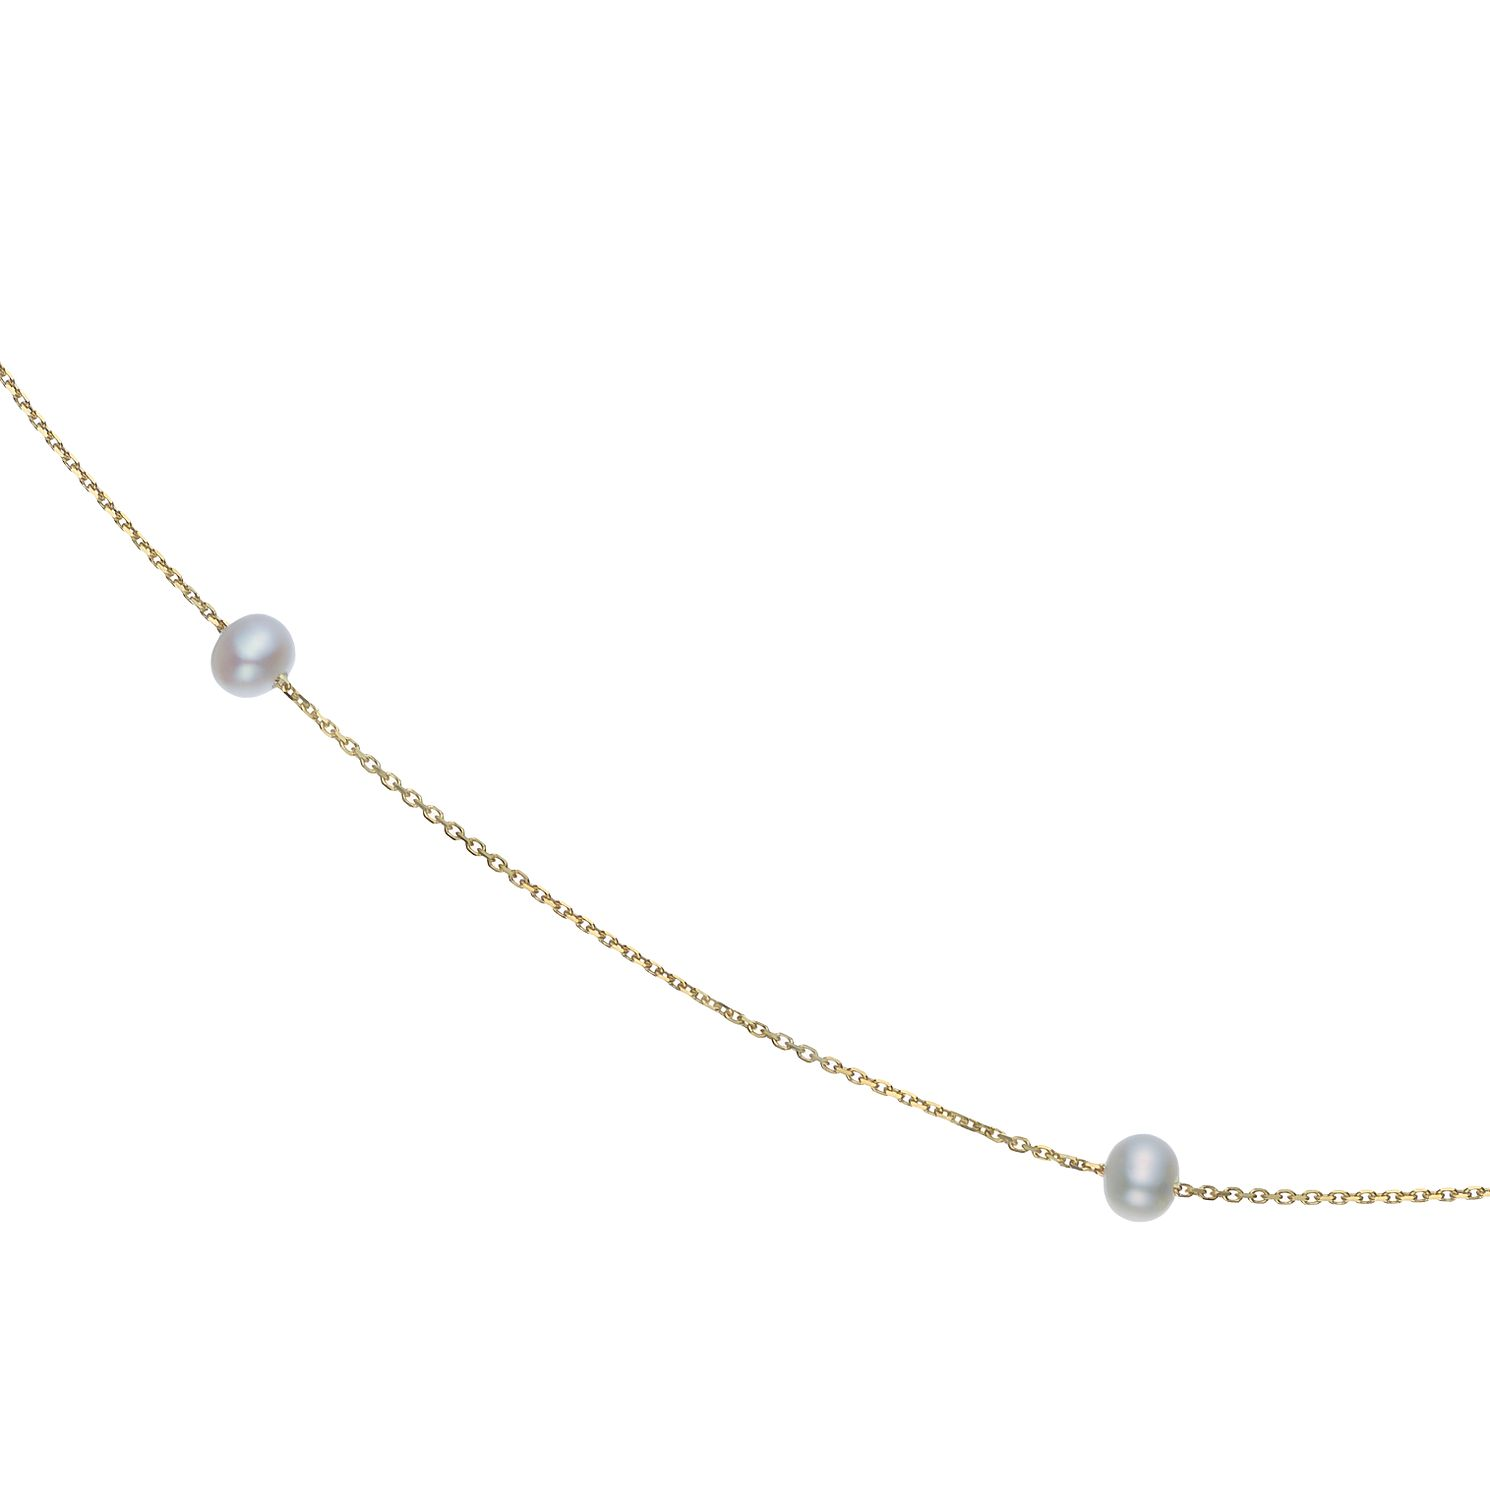 9ct Yellow Gold Cultured Freshwater Pearl Necklace - Product number 5850266